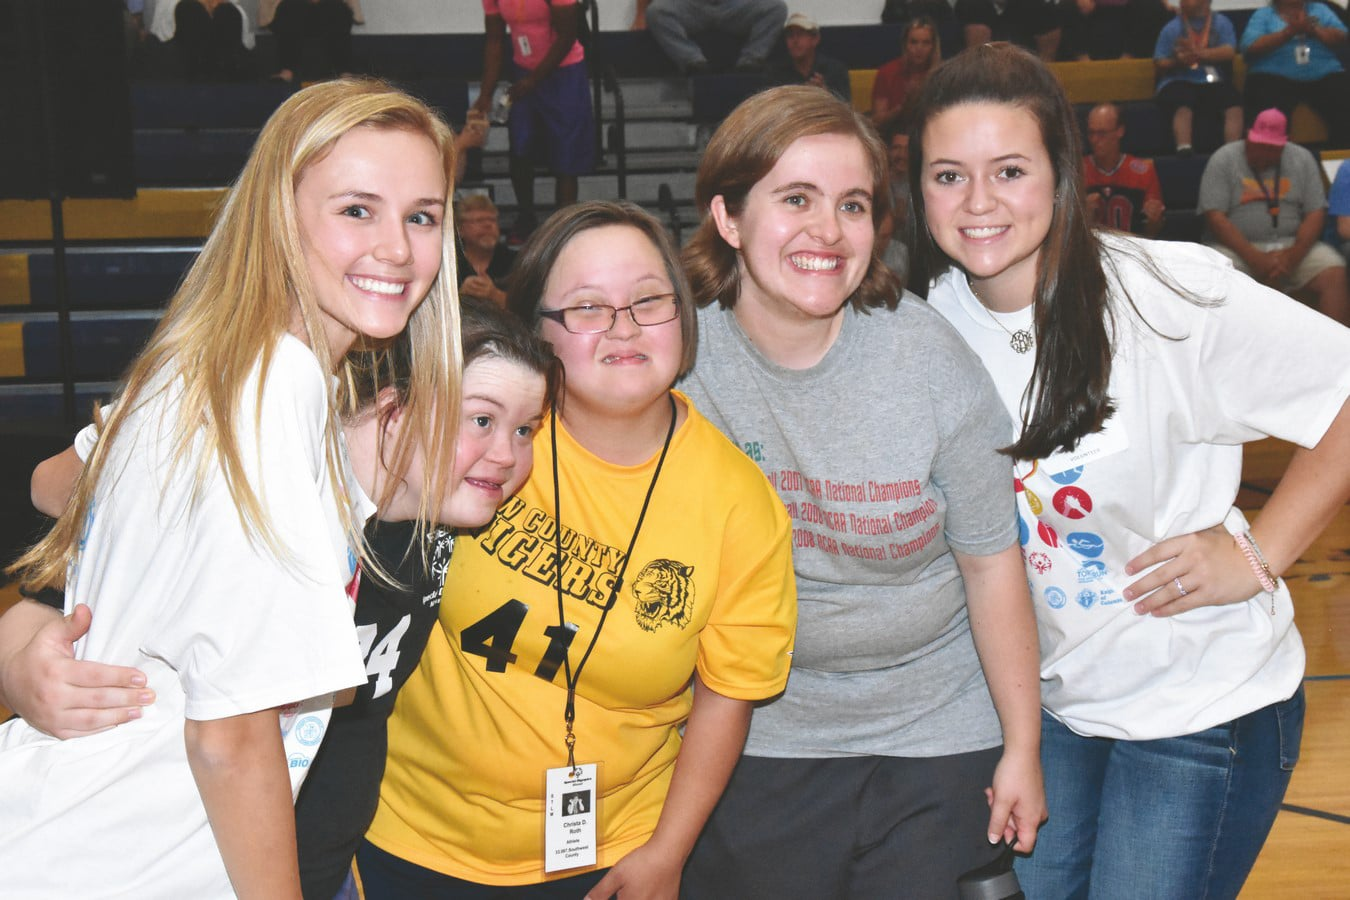 Athletes pose with volunteers while hugging and smiling at the camera